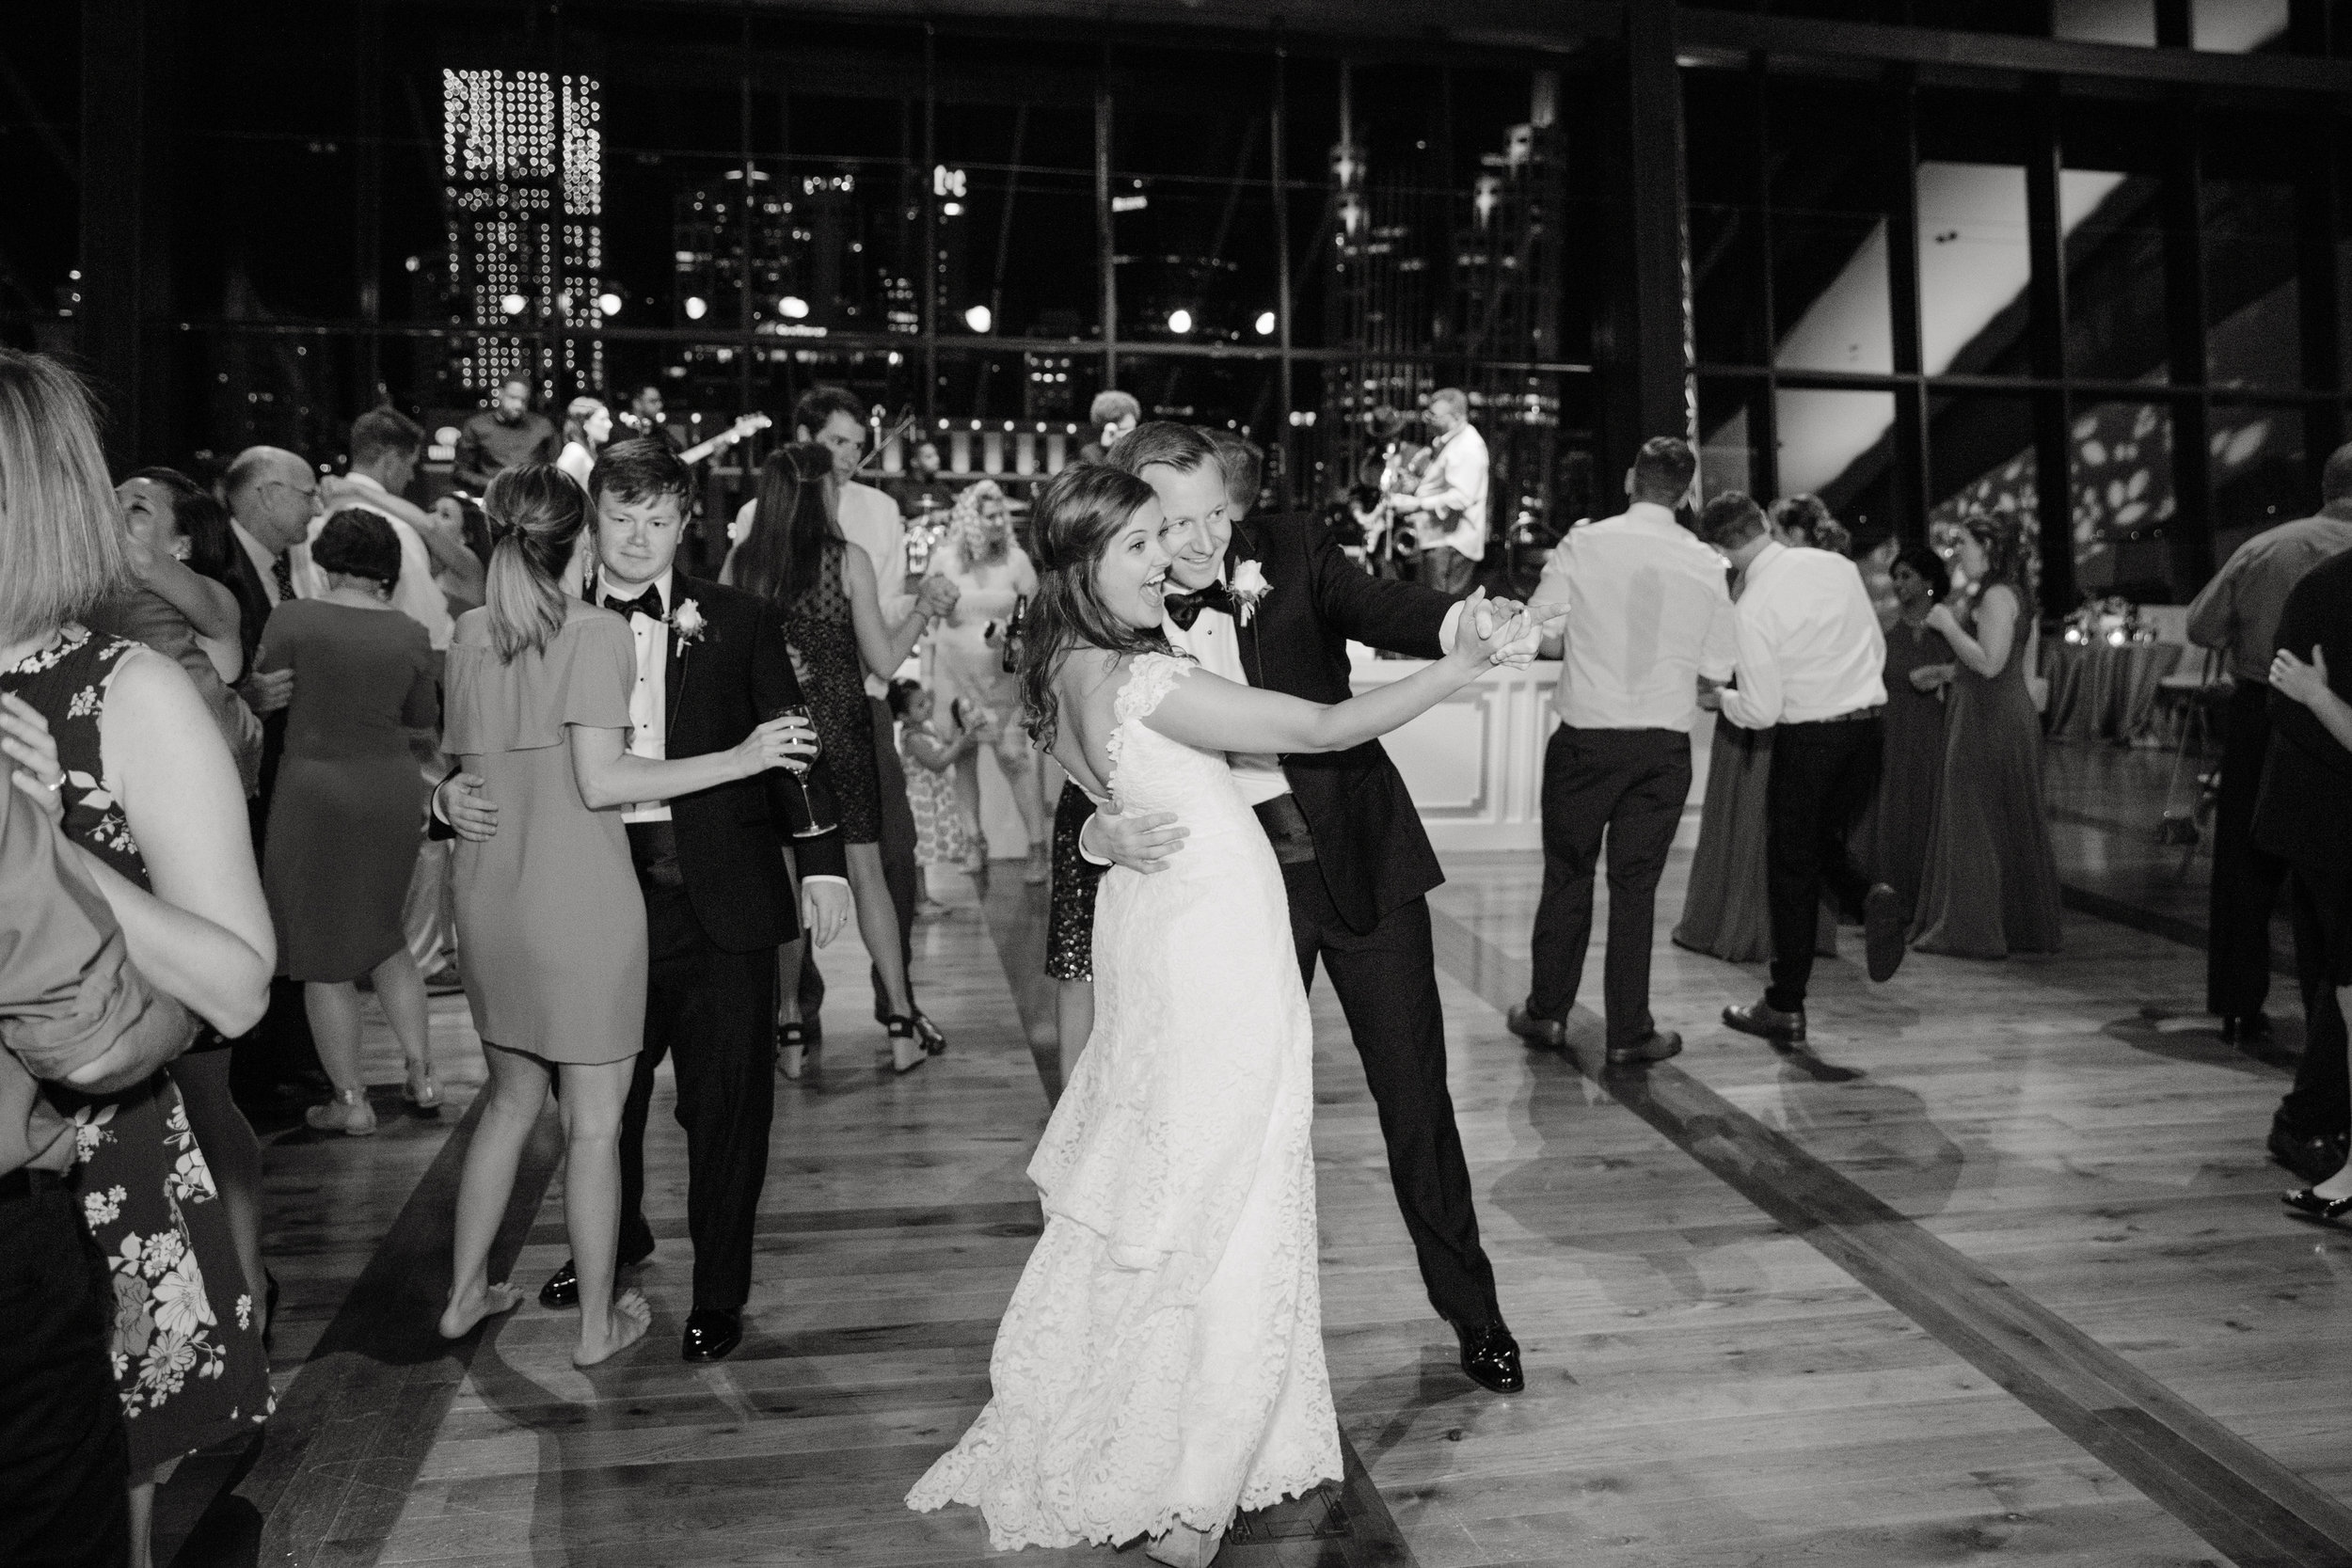 Guests hit the dancefloor at this lavish wedding reception at the Country Music Hall of Fame in downtown Nashville, TN. Wedding planning & design by Big Events Wedding.